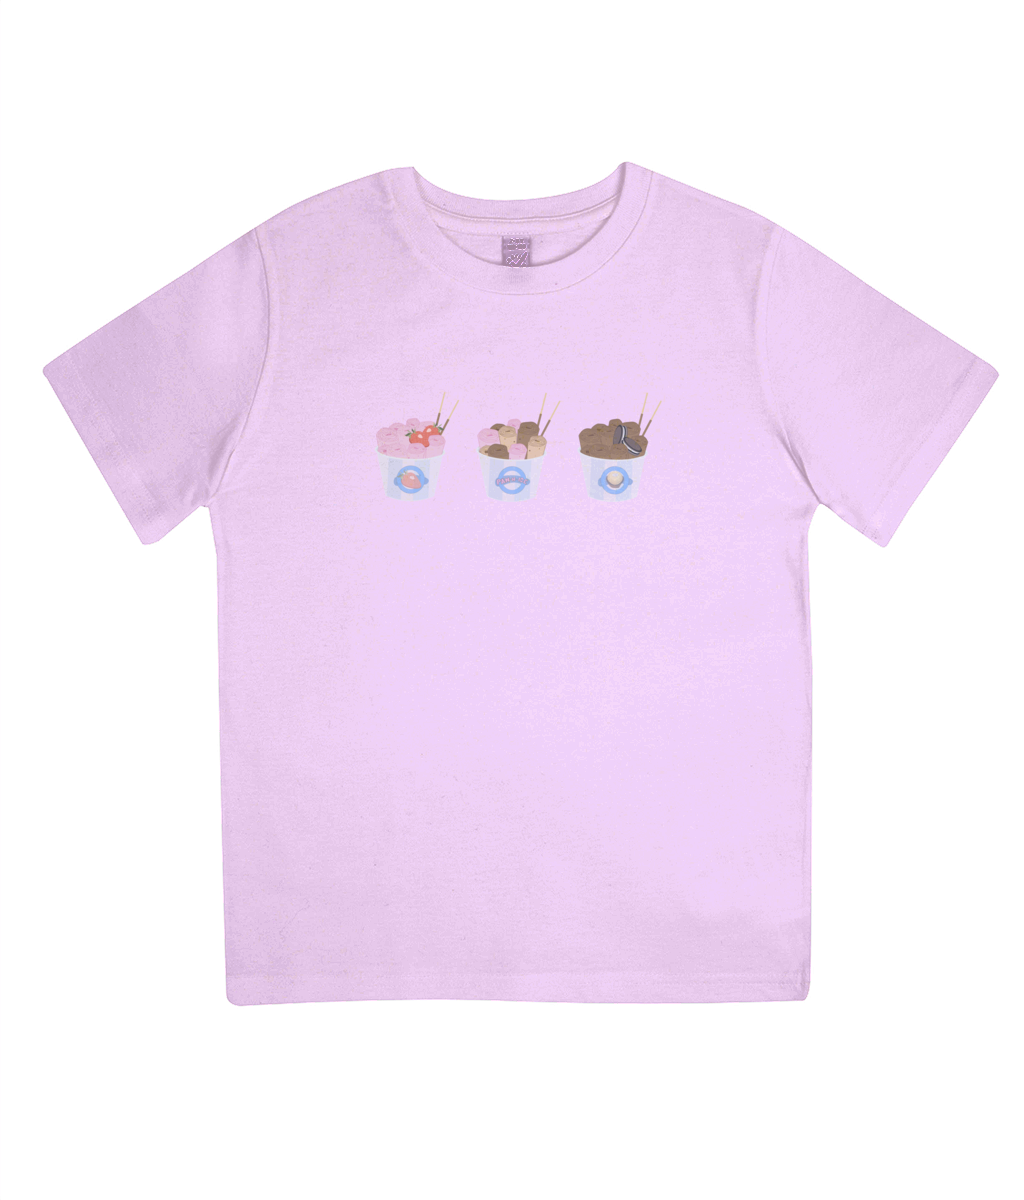 Baby/toddler t shirt